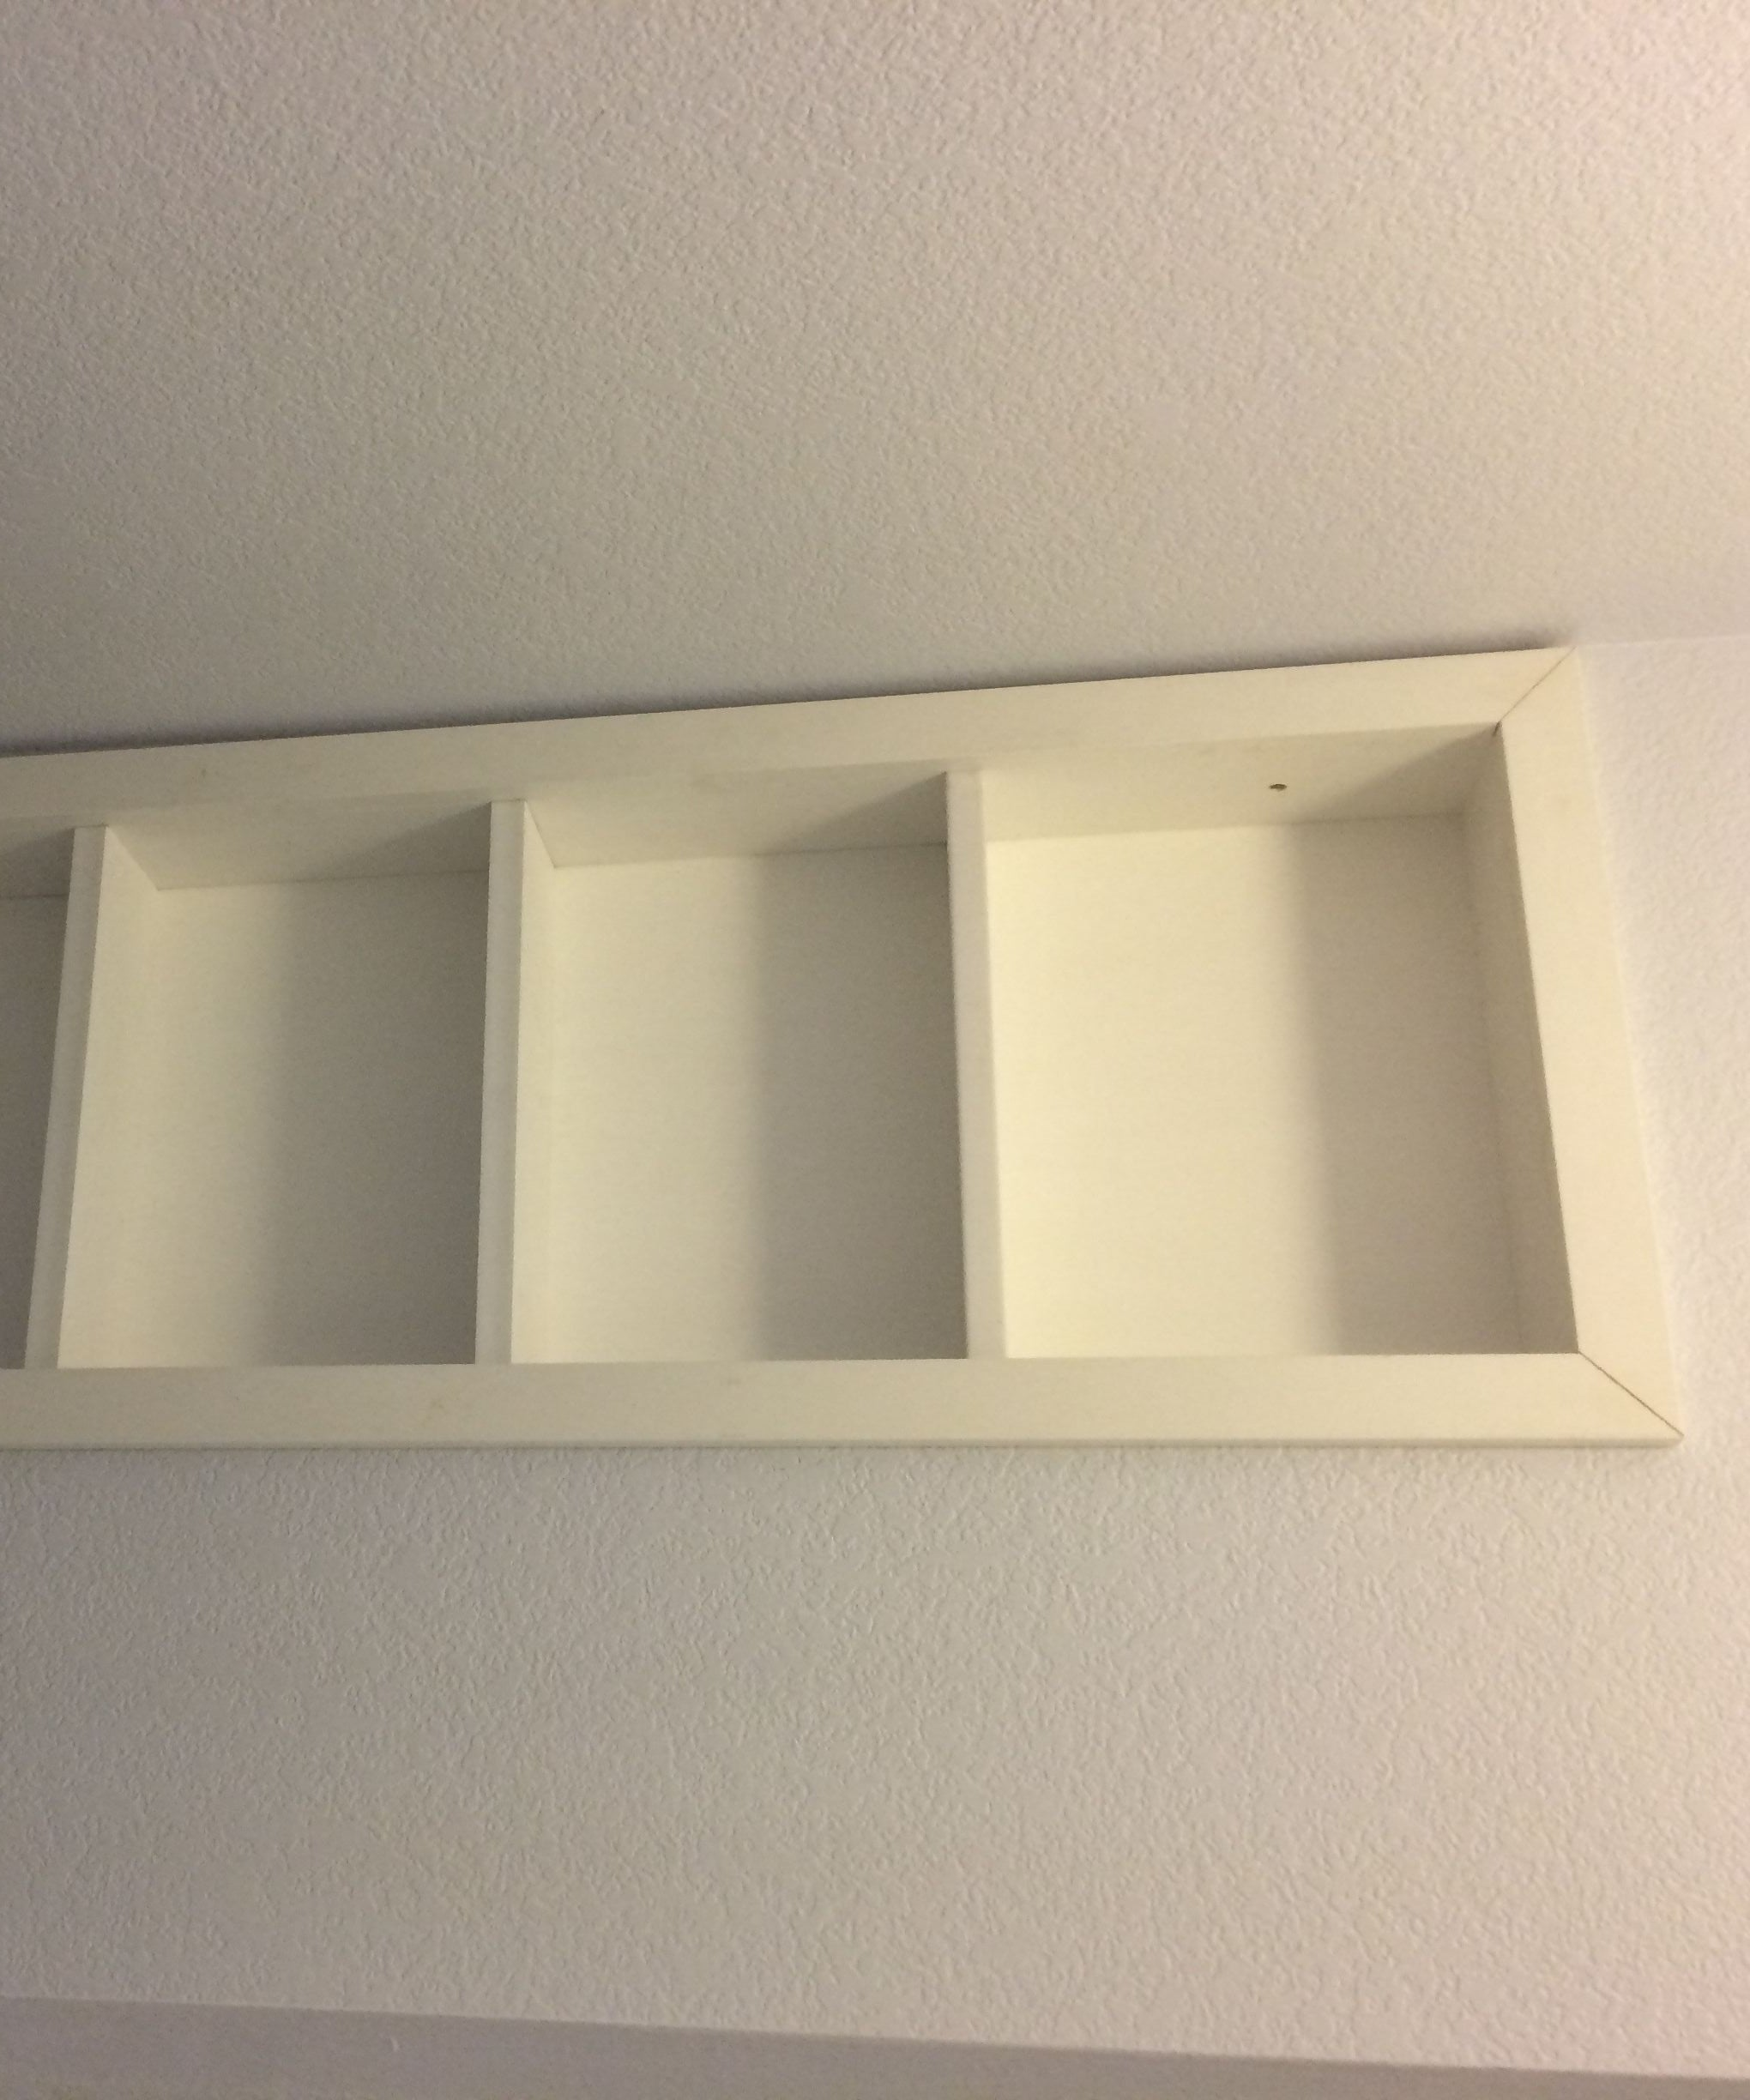 Built In Shelves Between The Studs 4 Steps With Pictures